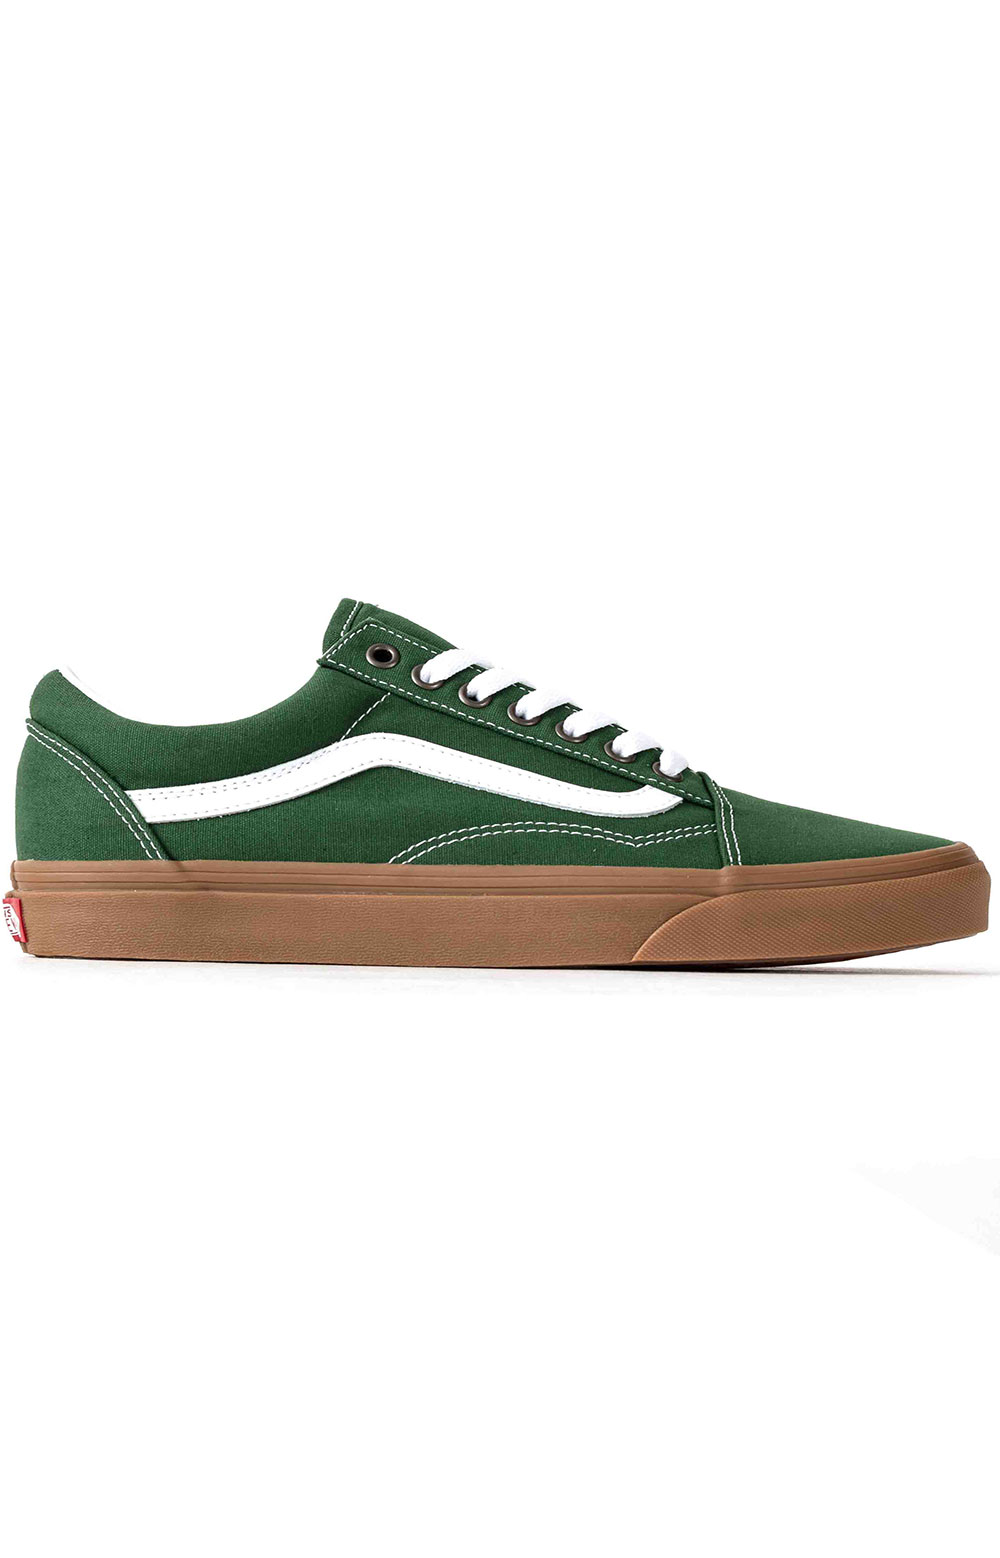 (U3BWYY) Gum Old Skool Shoe - Green Pastures